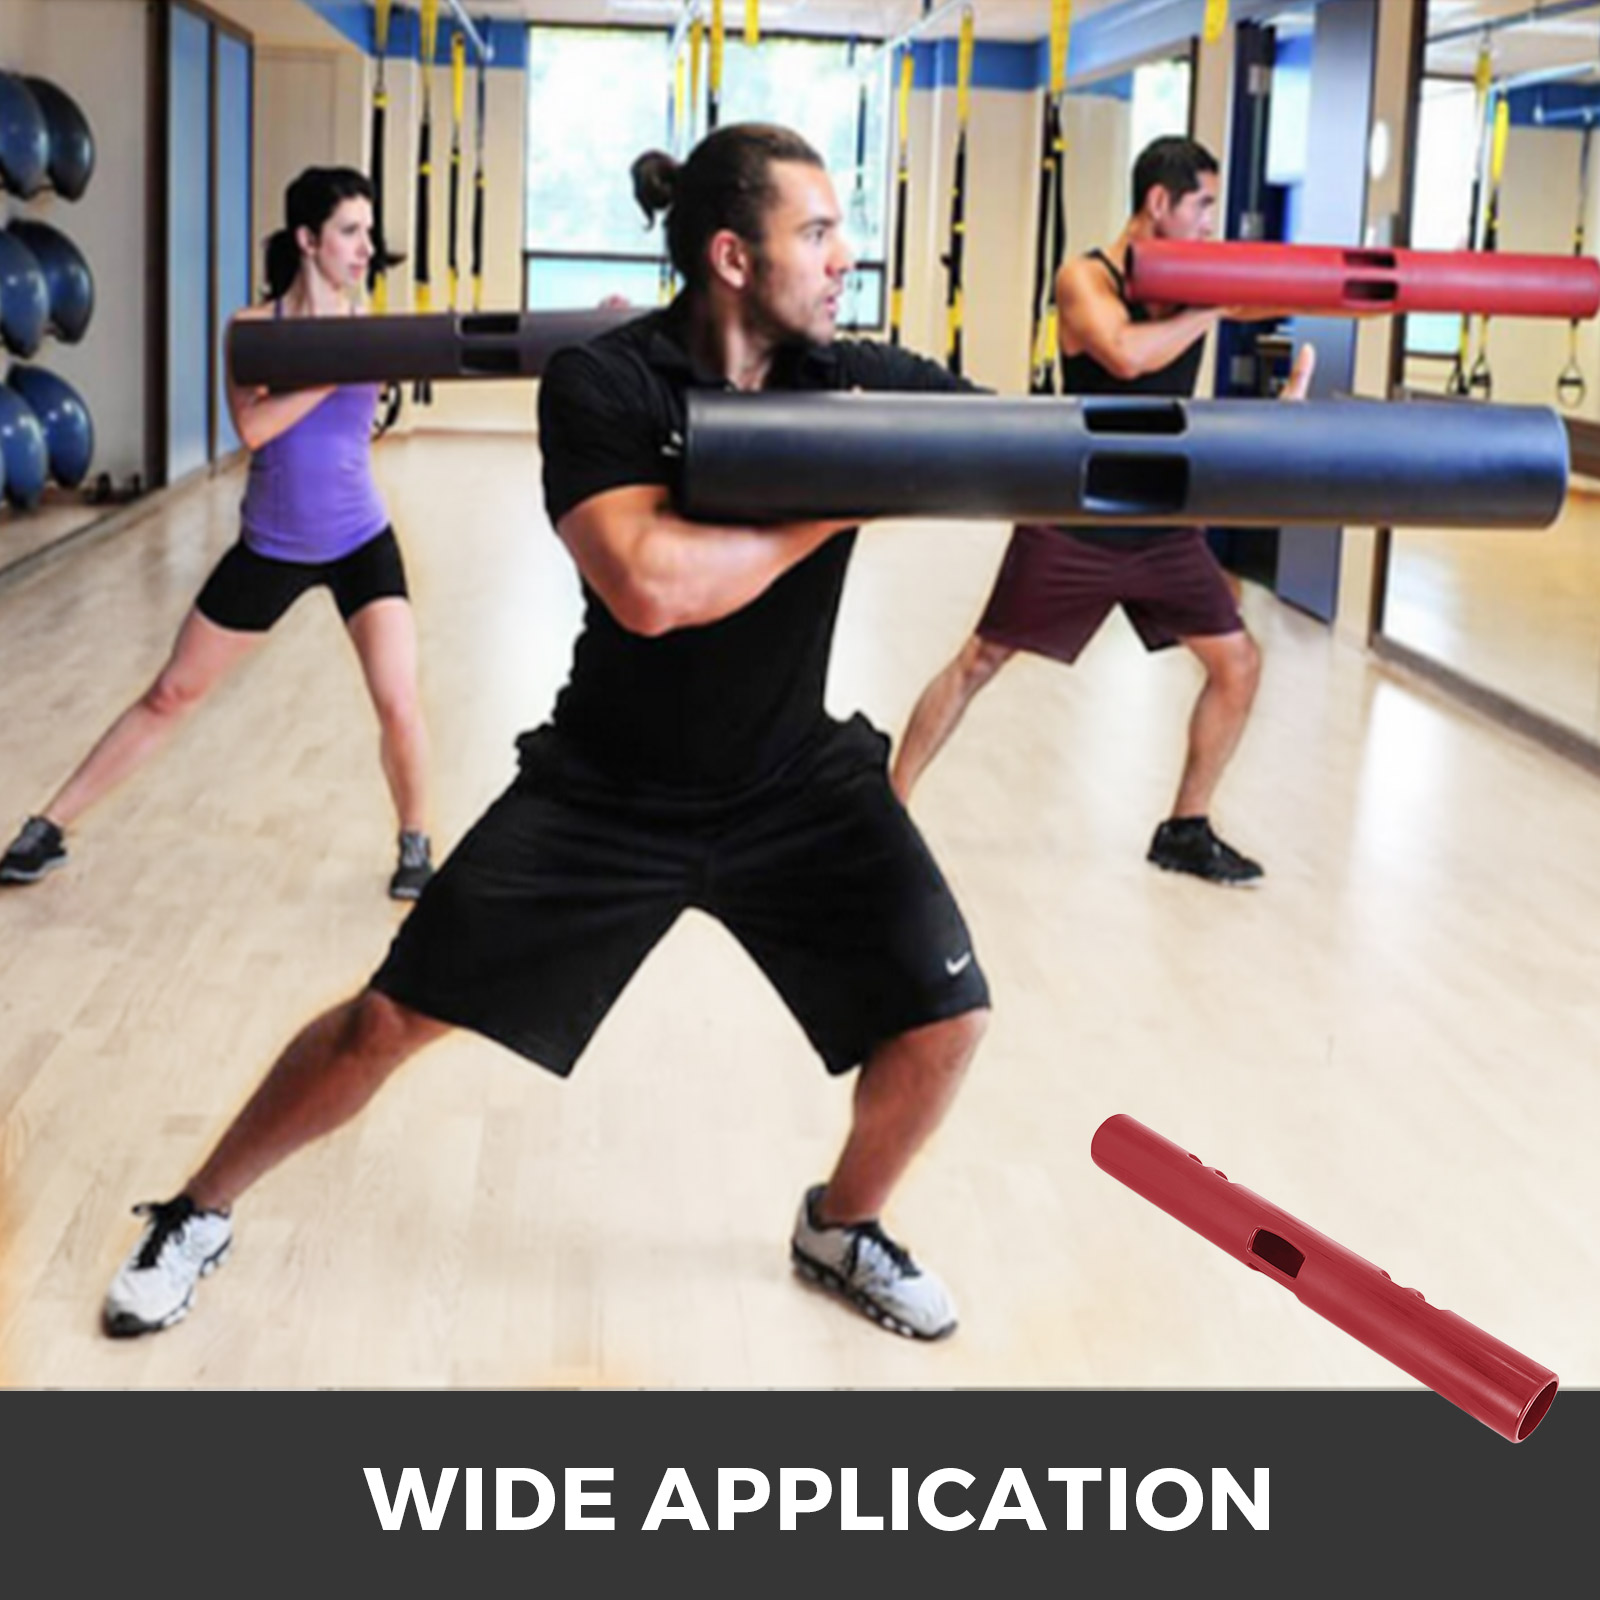 Vipr-Fitpro-Fitness-Tube-Loaded-Movement-Training-weightlifting-4-6-8-10-12-Kg thumbnail 115